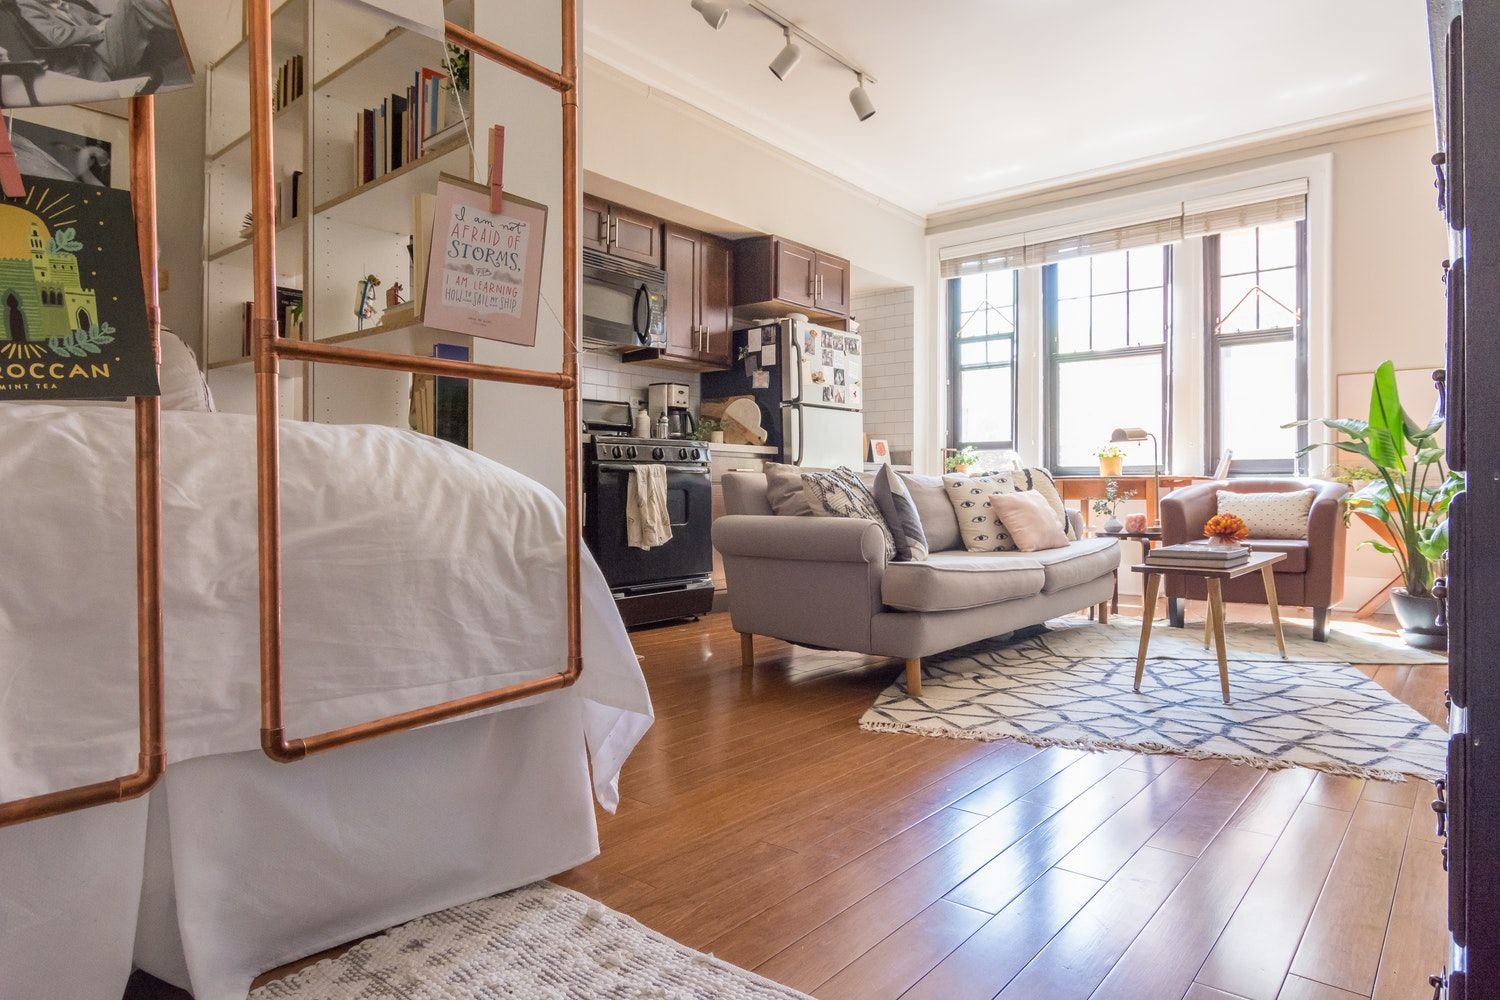 1 bedroom loft apartment  This SquareFoot Chicago Studio Has Smart Space Ideas  Future